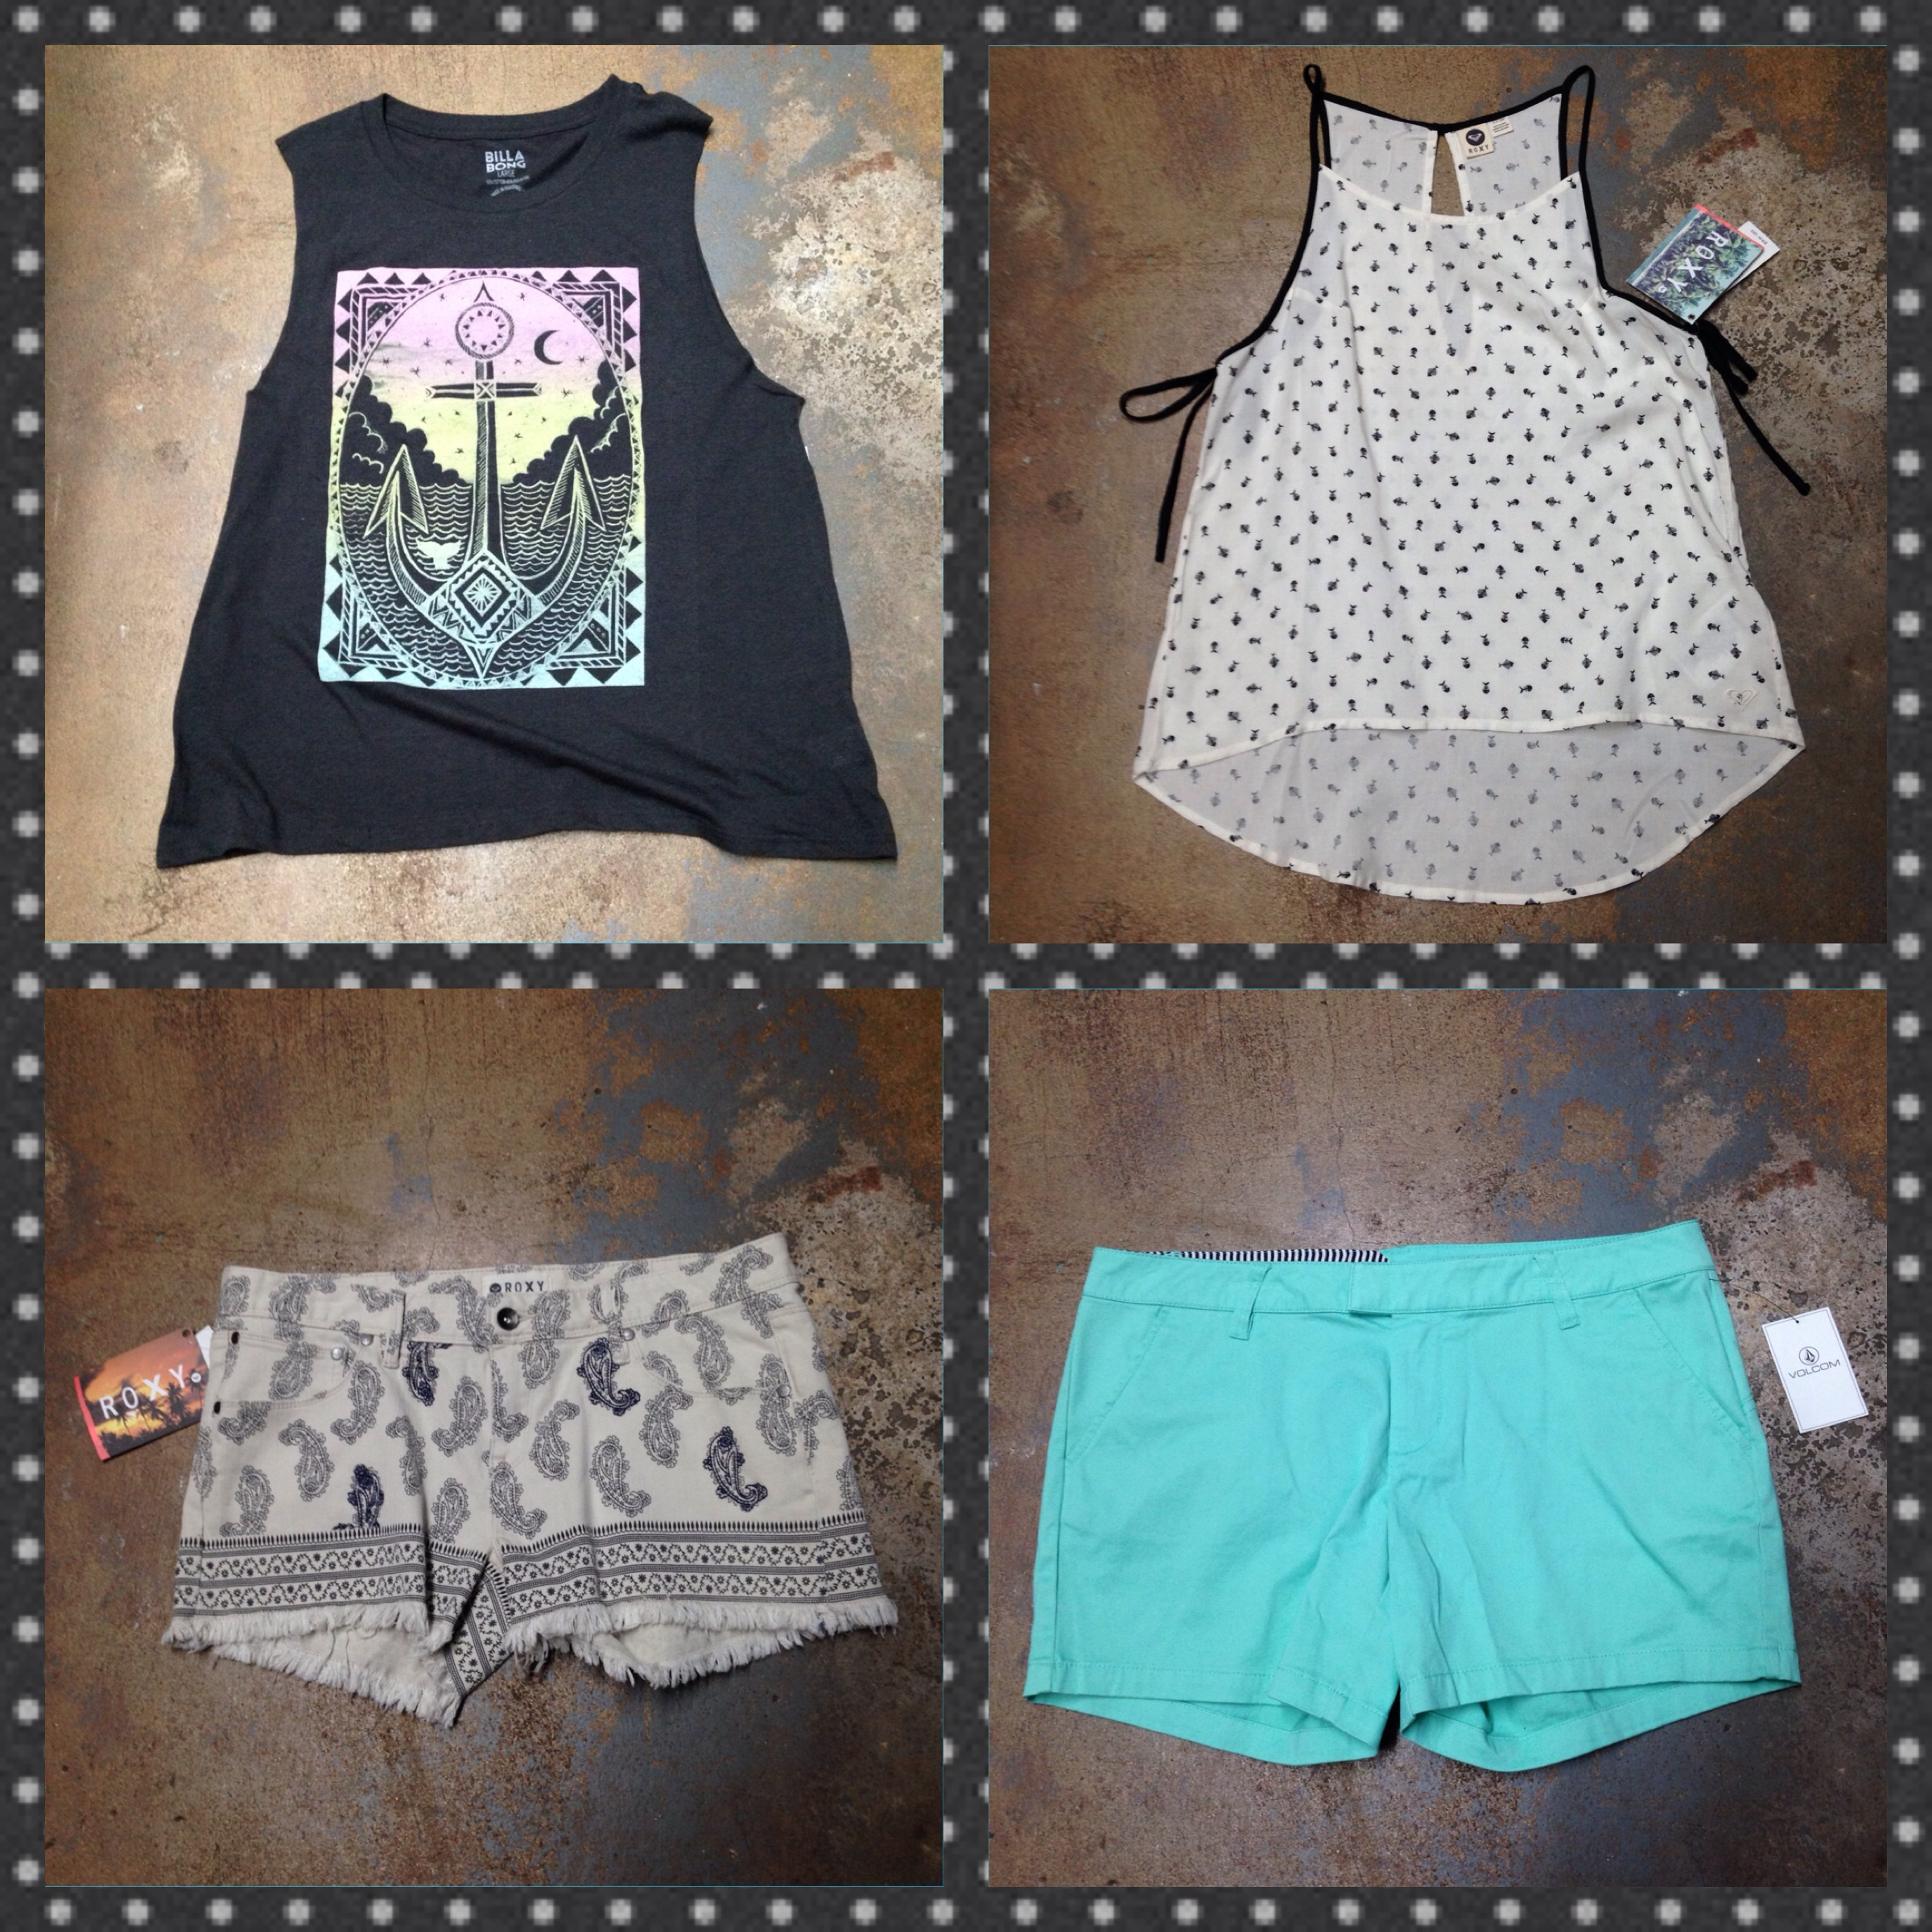 Tops and shorts from Billabong, Roxy, and Volcom!